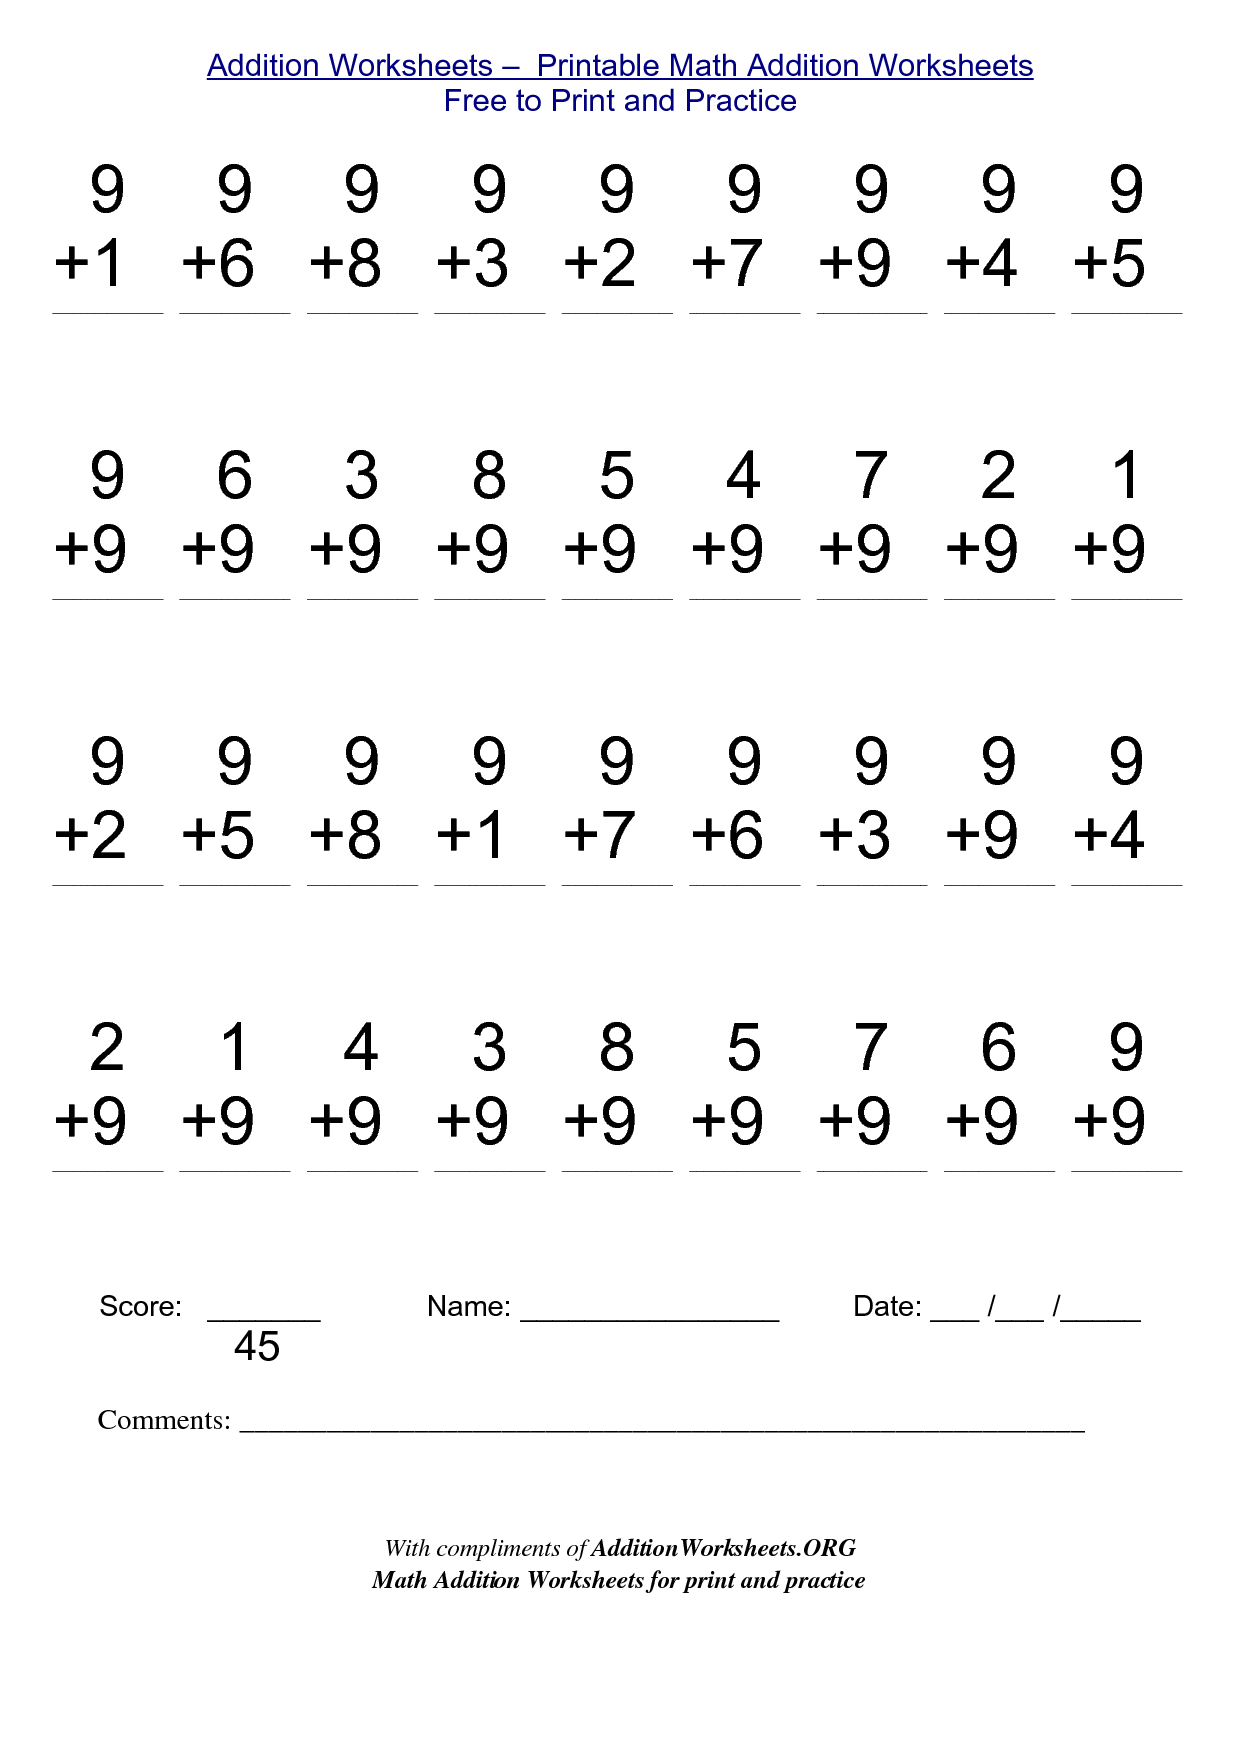 math worksheets for free to print me pinterest addition worksheets math. Black Bedroom Furniture Sets. Home Design Ideas